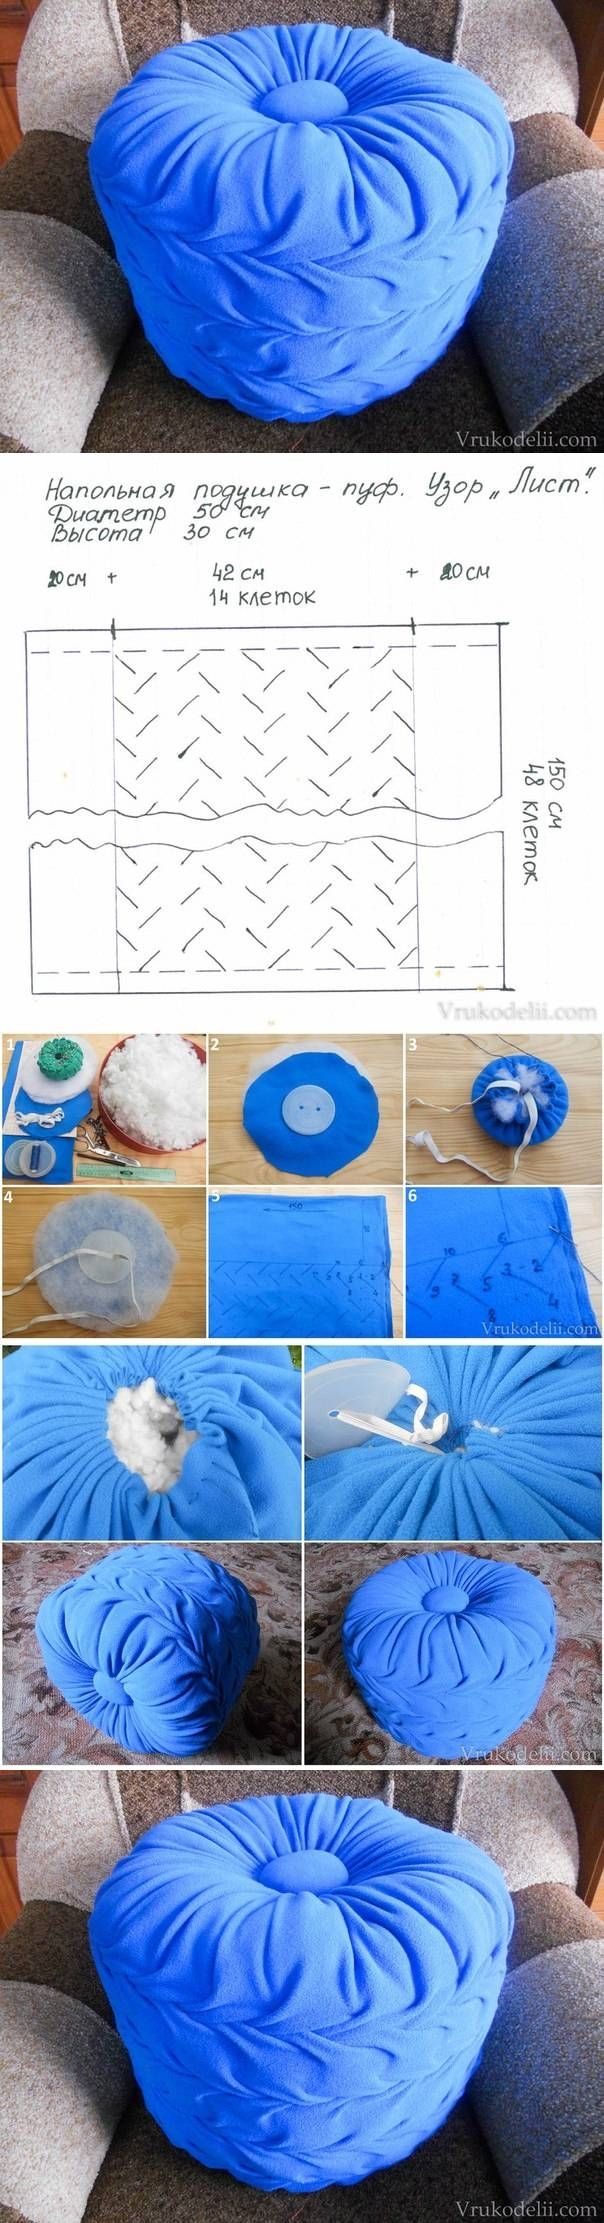 DIY Floor Pillow Pictures, Photos, and Images for Facebook, Tumblr, Pinterest, and Twitter